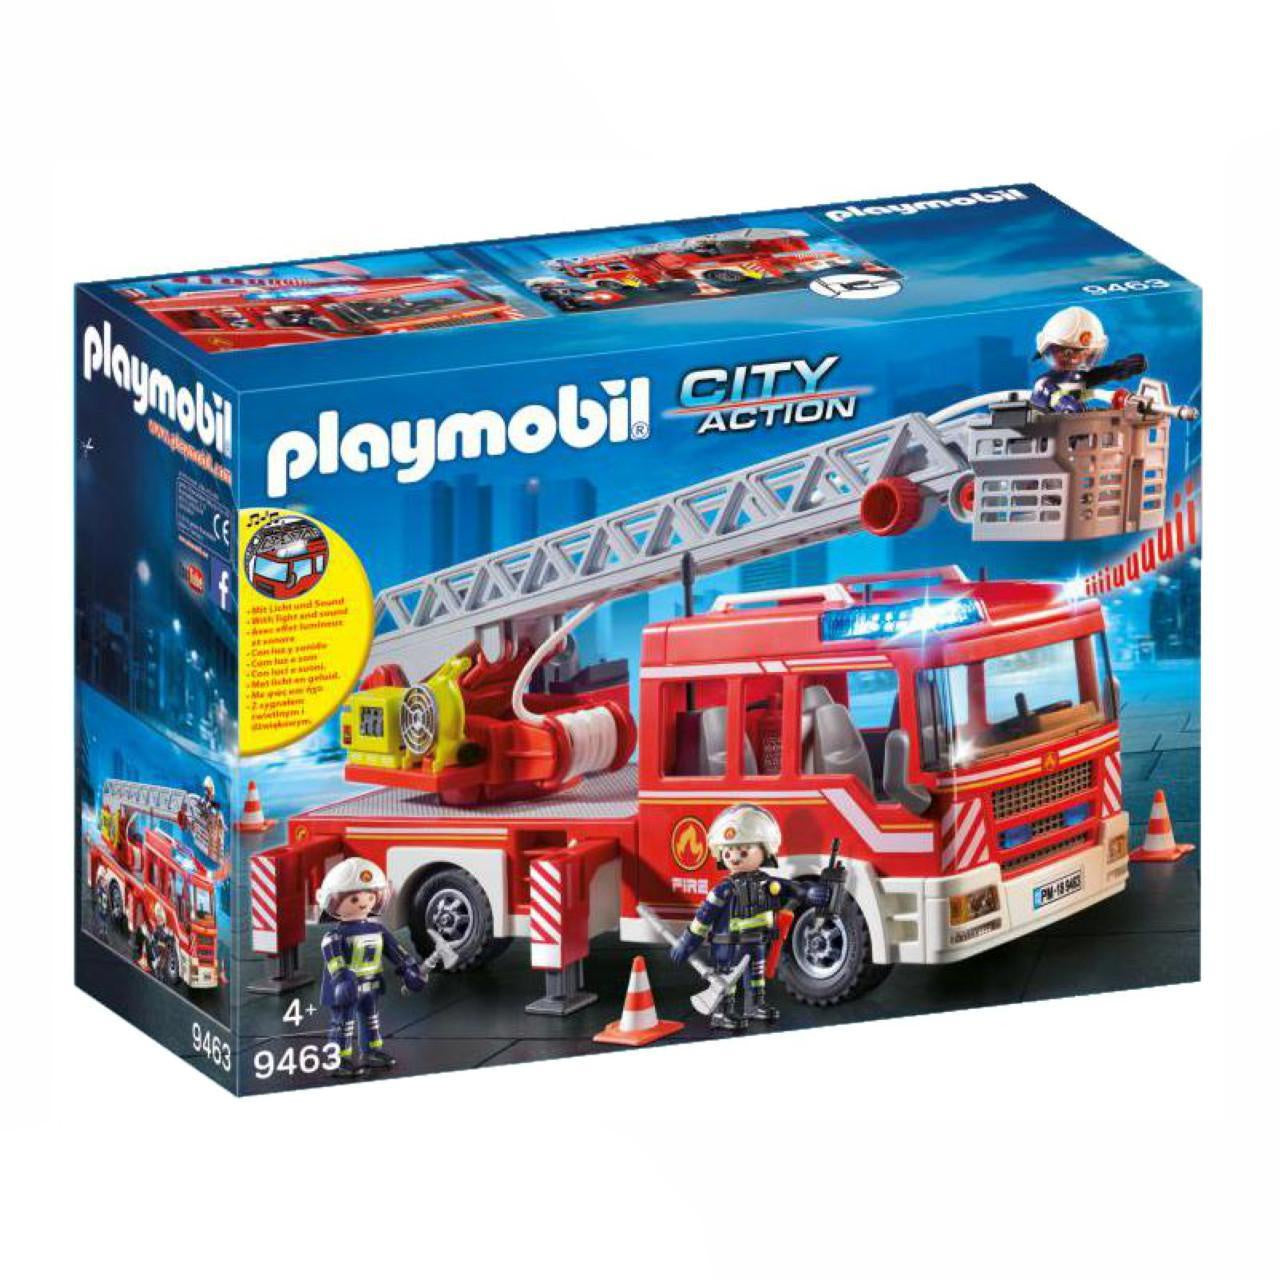 Playmobil City Action 9463 Fire Ladder Unit Vehicle